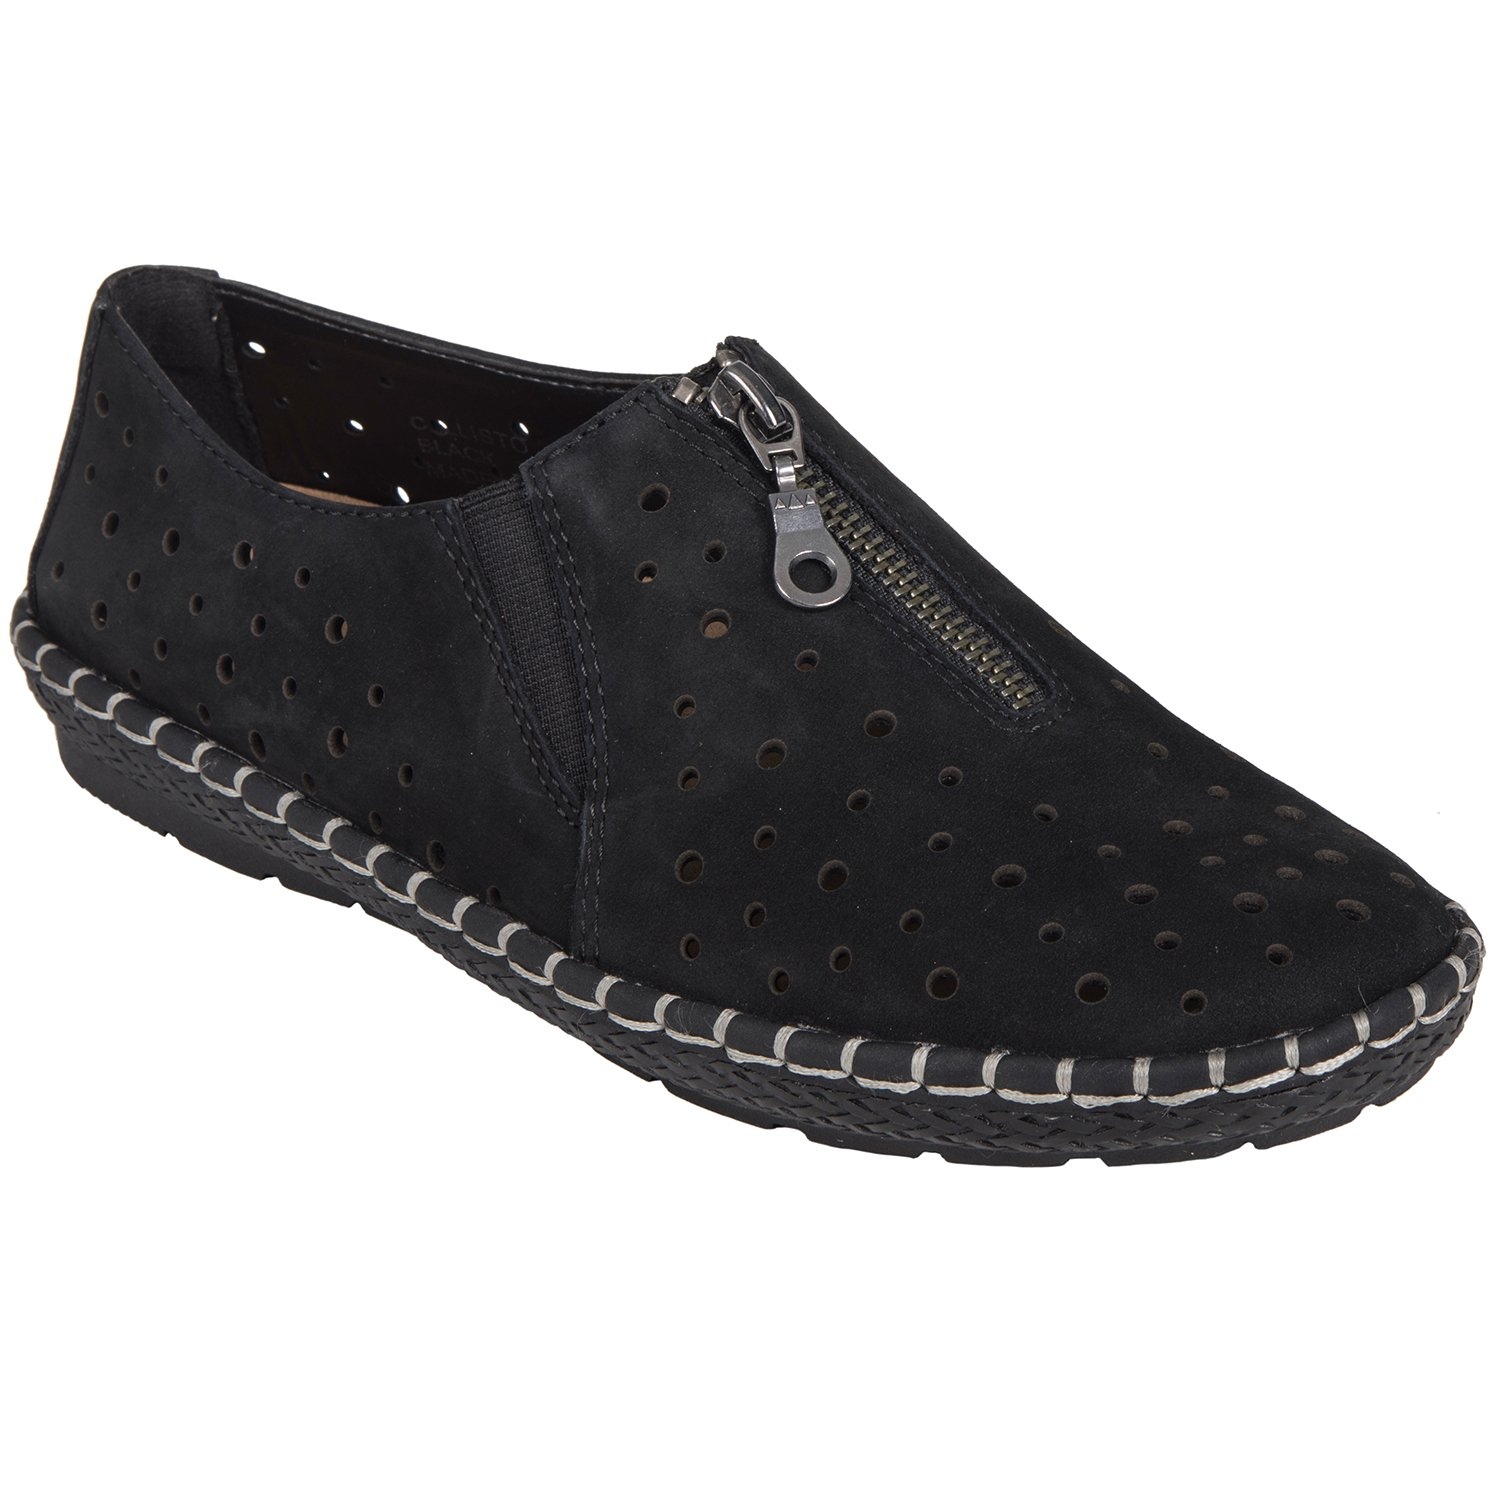 Earth Shoes Callisto B079622PDB 9 B(M) US|Black